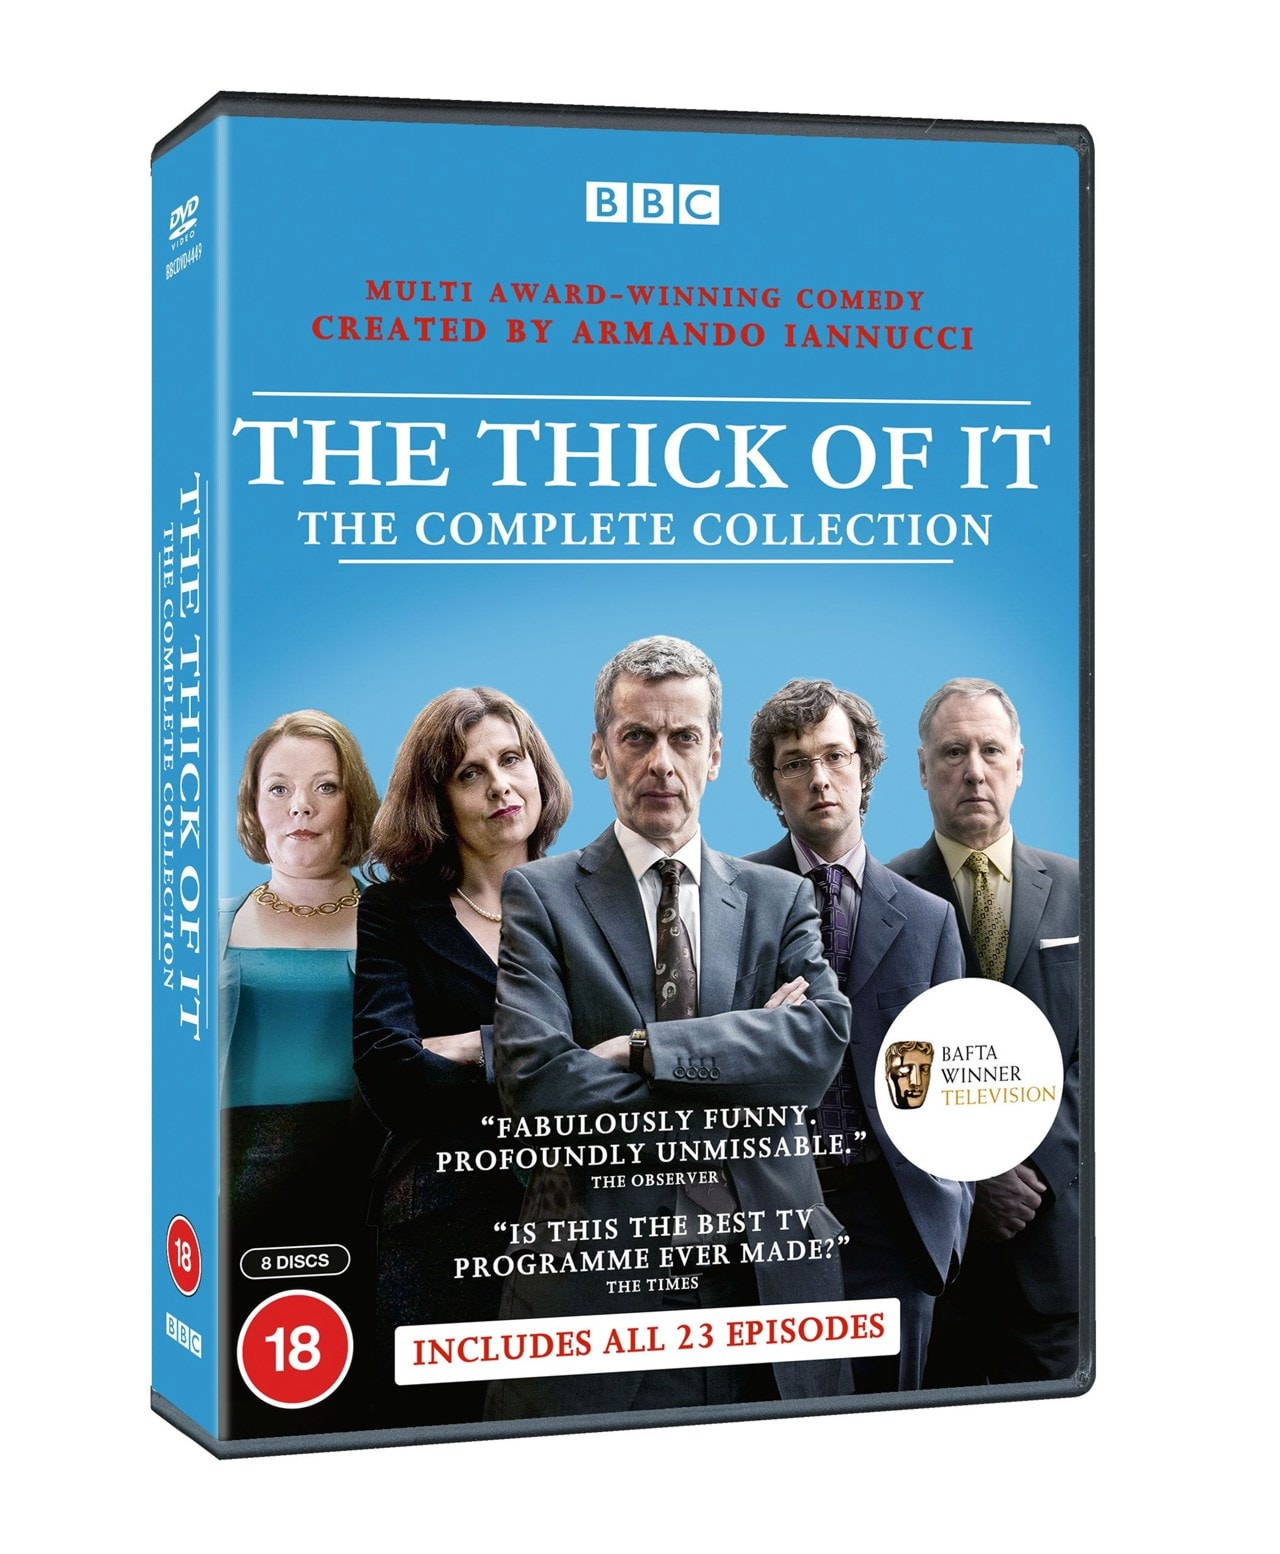 The Thick of It: Complete Collection - 2